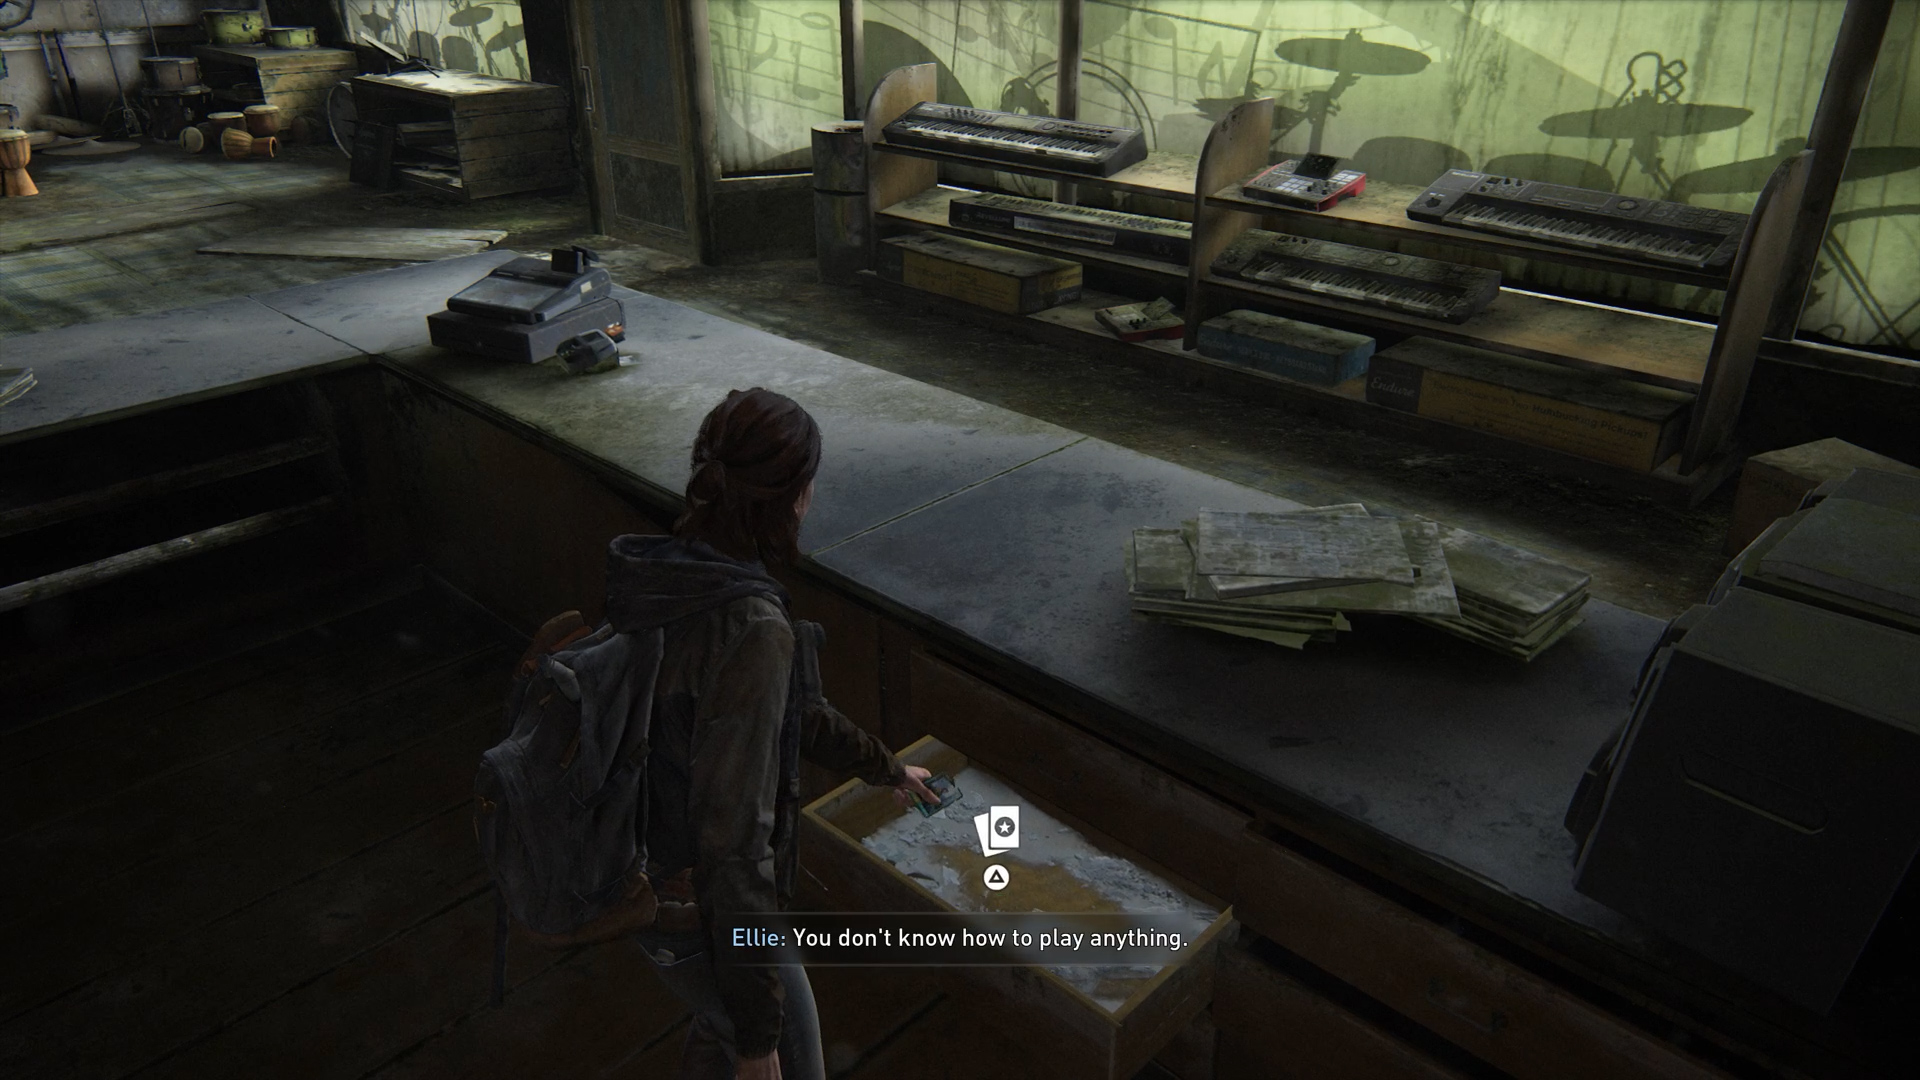 Trading Card locations in Tlou2 - Das Wort